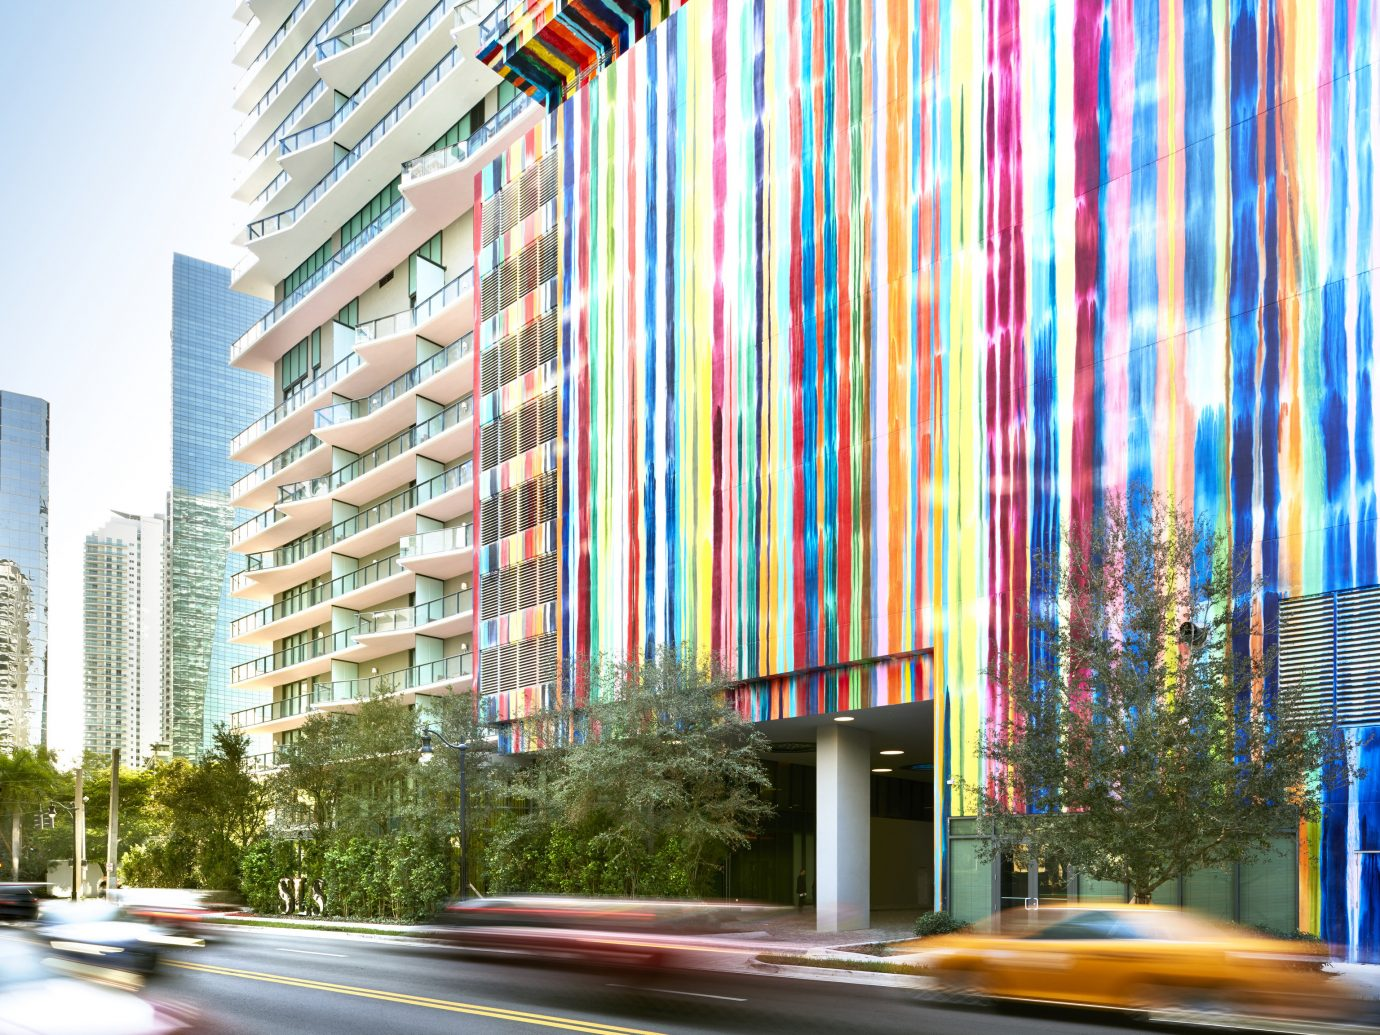 Hotels outdoor urban area Architecture interior design facade Downtown condominium lighting City skyscraper tower block window covering colorful lined tall